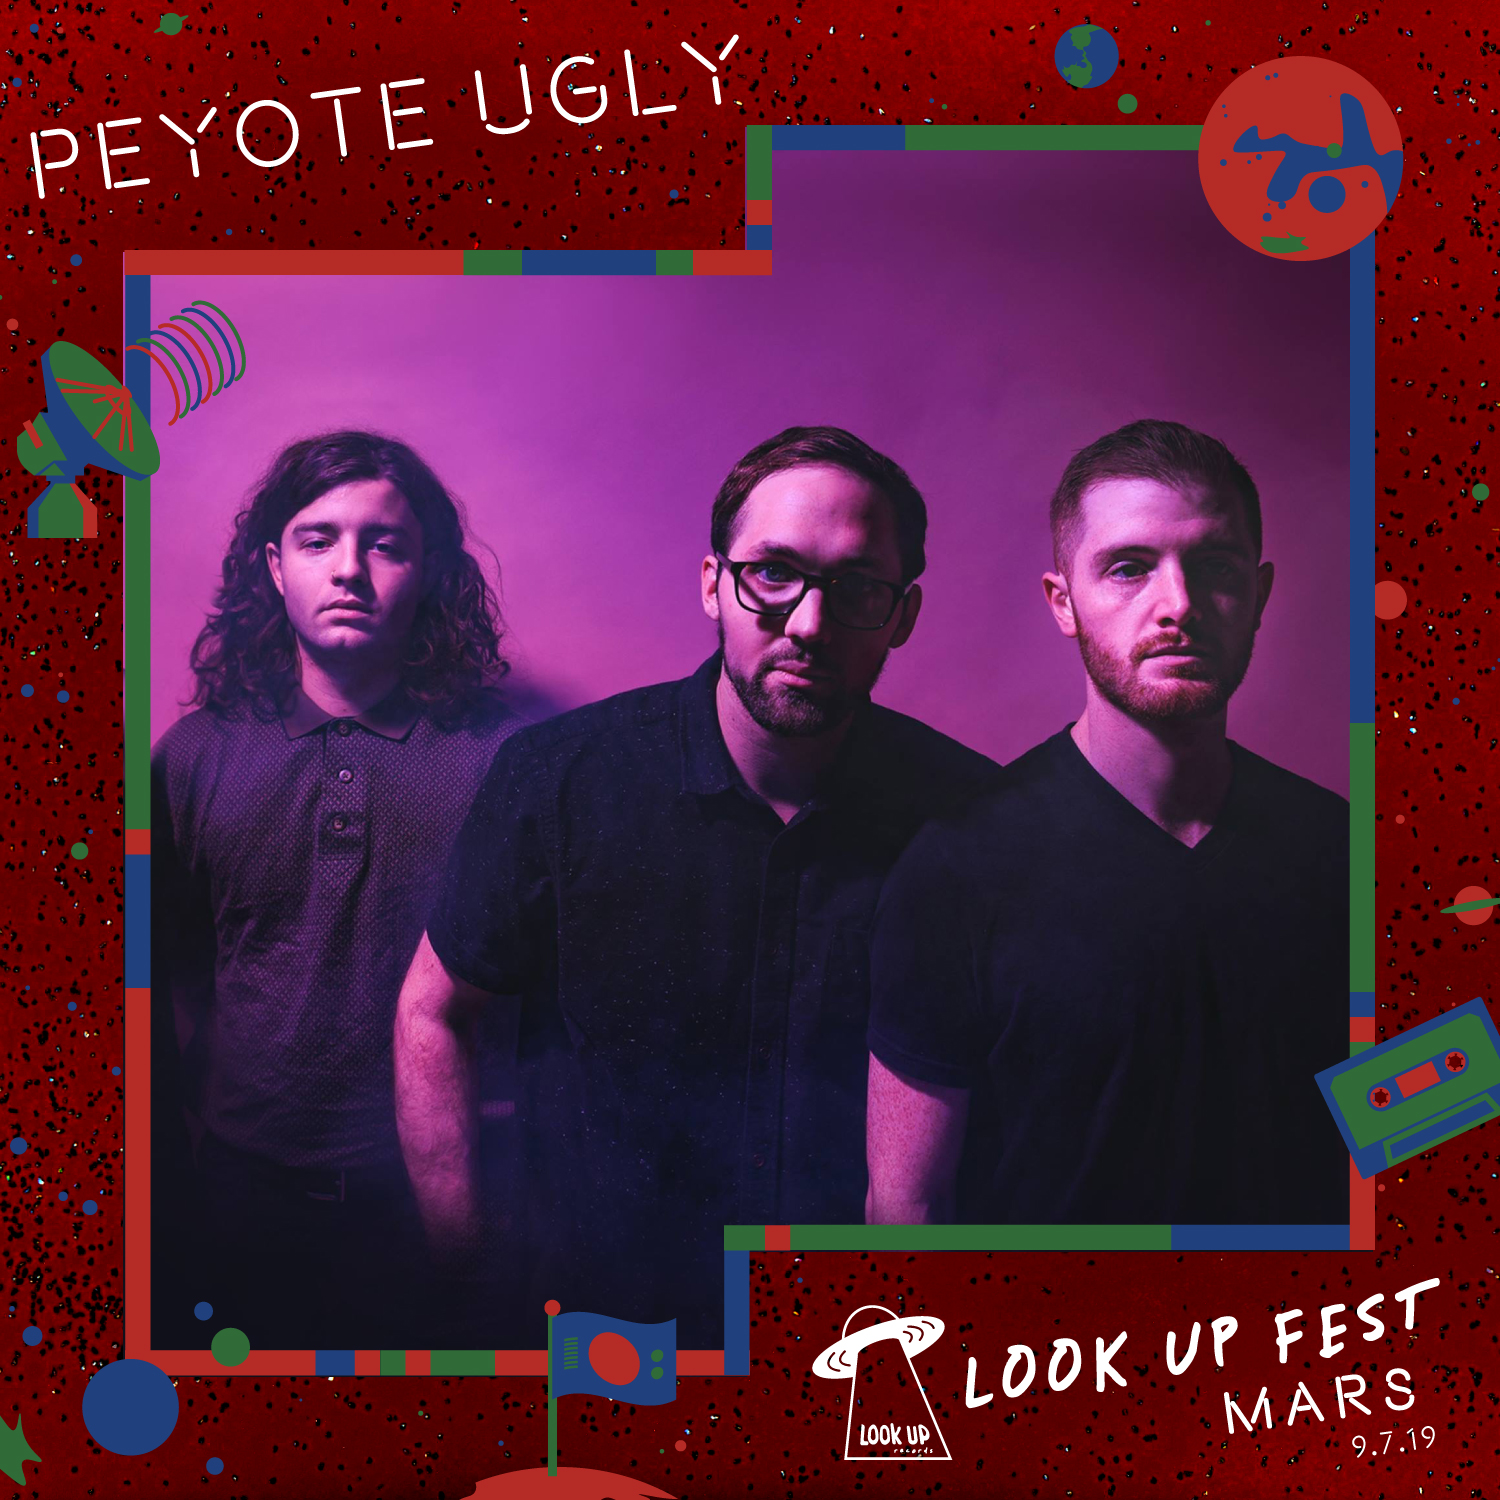 """PEYOTE UGLY - An ectodelic synth-psych threesome from Seattle. With a name like Peyote Ugly, there's no shortage of imagery that comes to mind. The synth-psych trio lives up to the hype of their moniker. The band has spent the last couple years in Seattle's dives and playing a wealth of shows as they fine-tuned the songs that would eventually become the Peyote Ugly EP. The result is a collection of songs that feel like a rare cool breeze waving through the barren desert. Not really """"ugly"""", but you can feel notes of spacey peyote in the mix."""